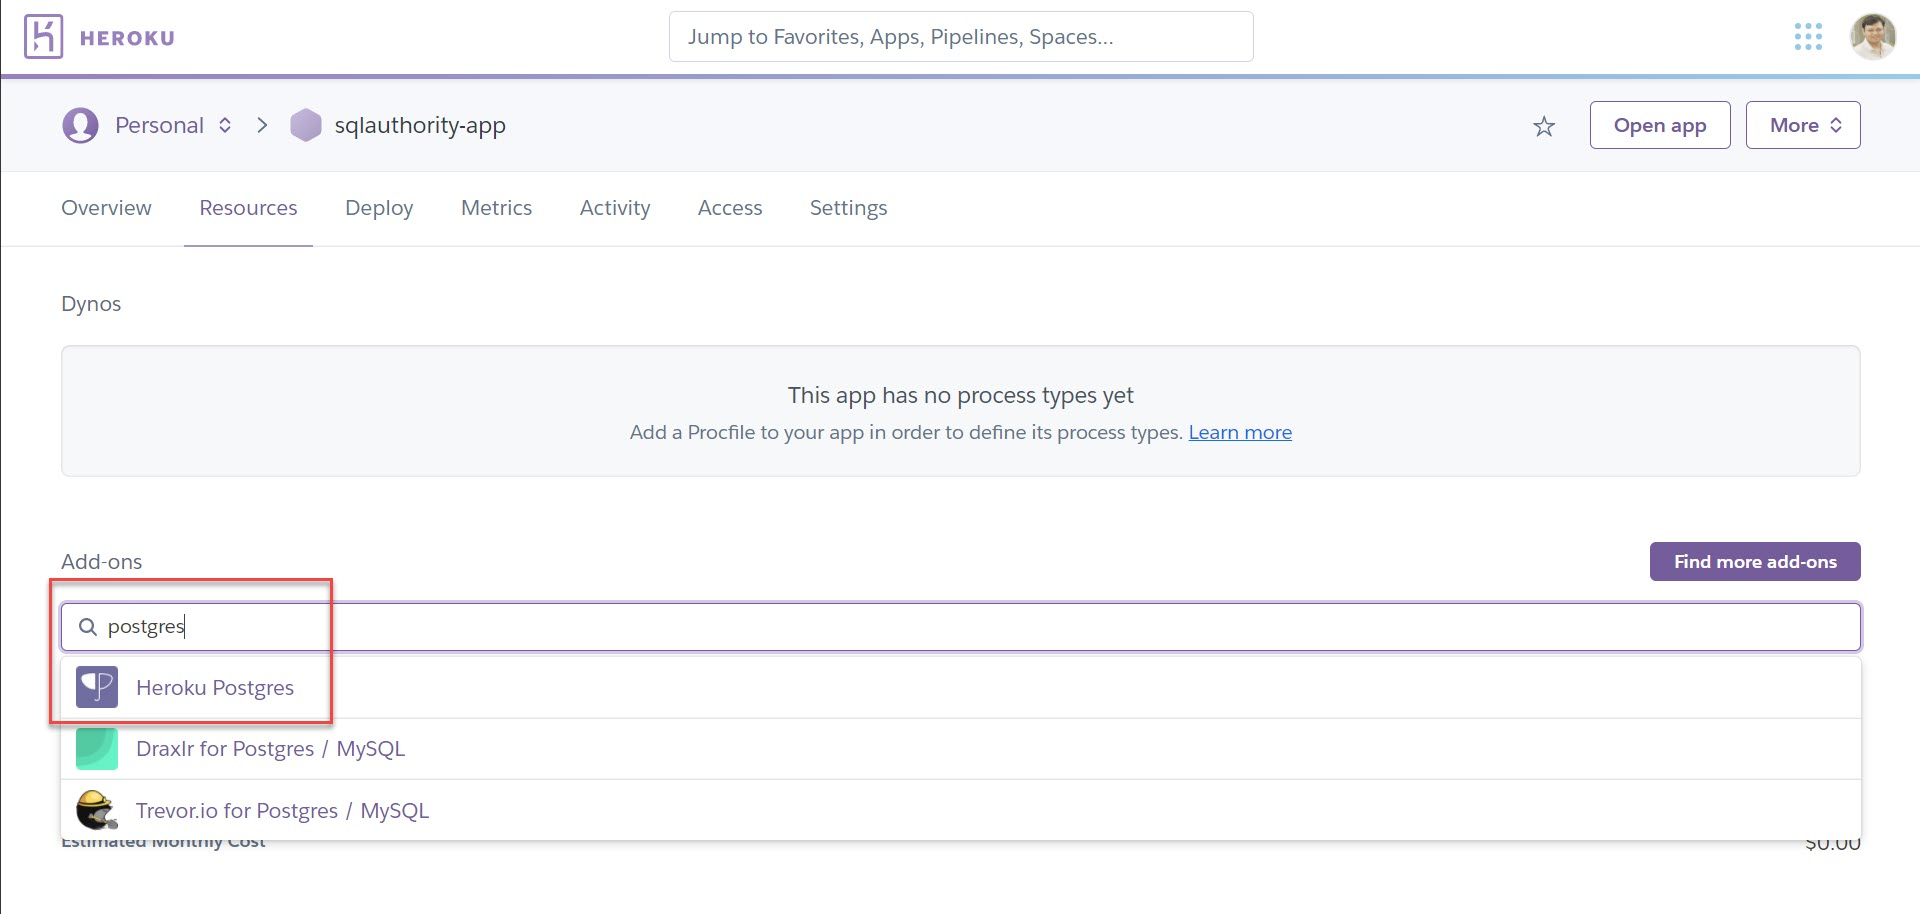 Heroku - How to Deploy Postgres Add-Ons? herokuapp4